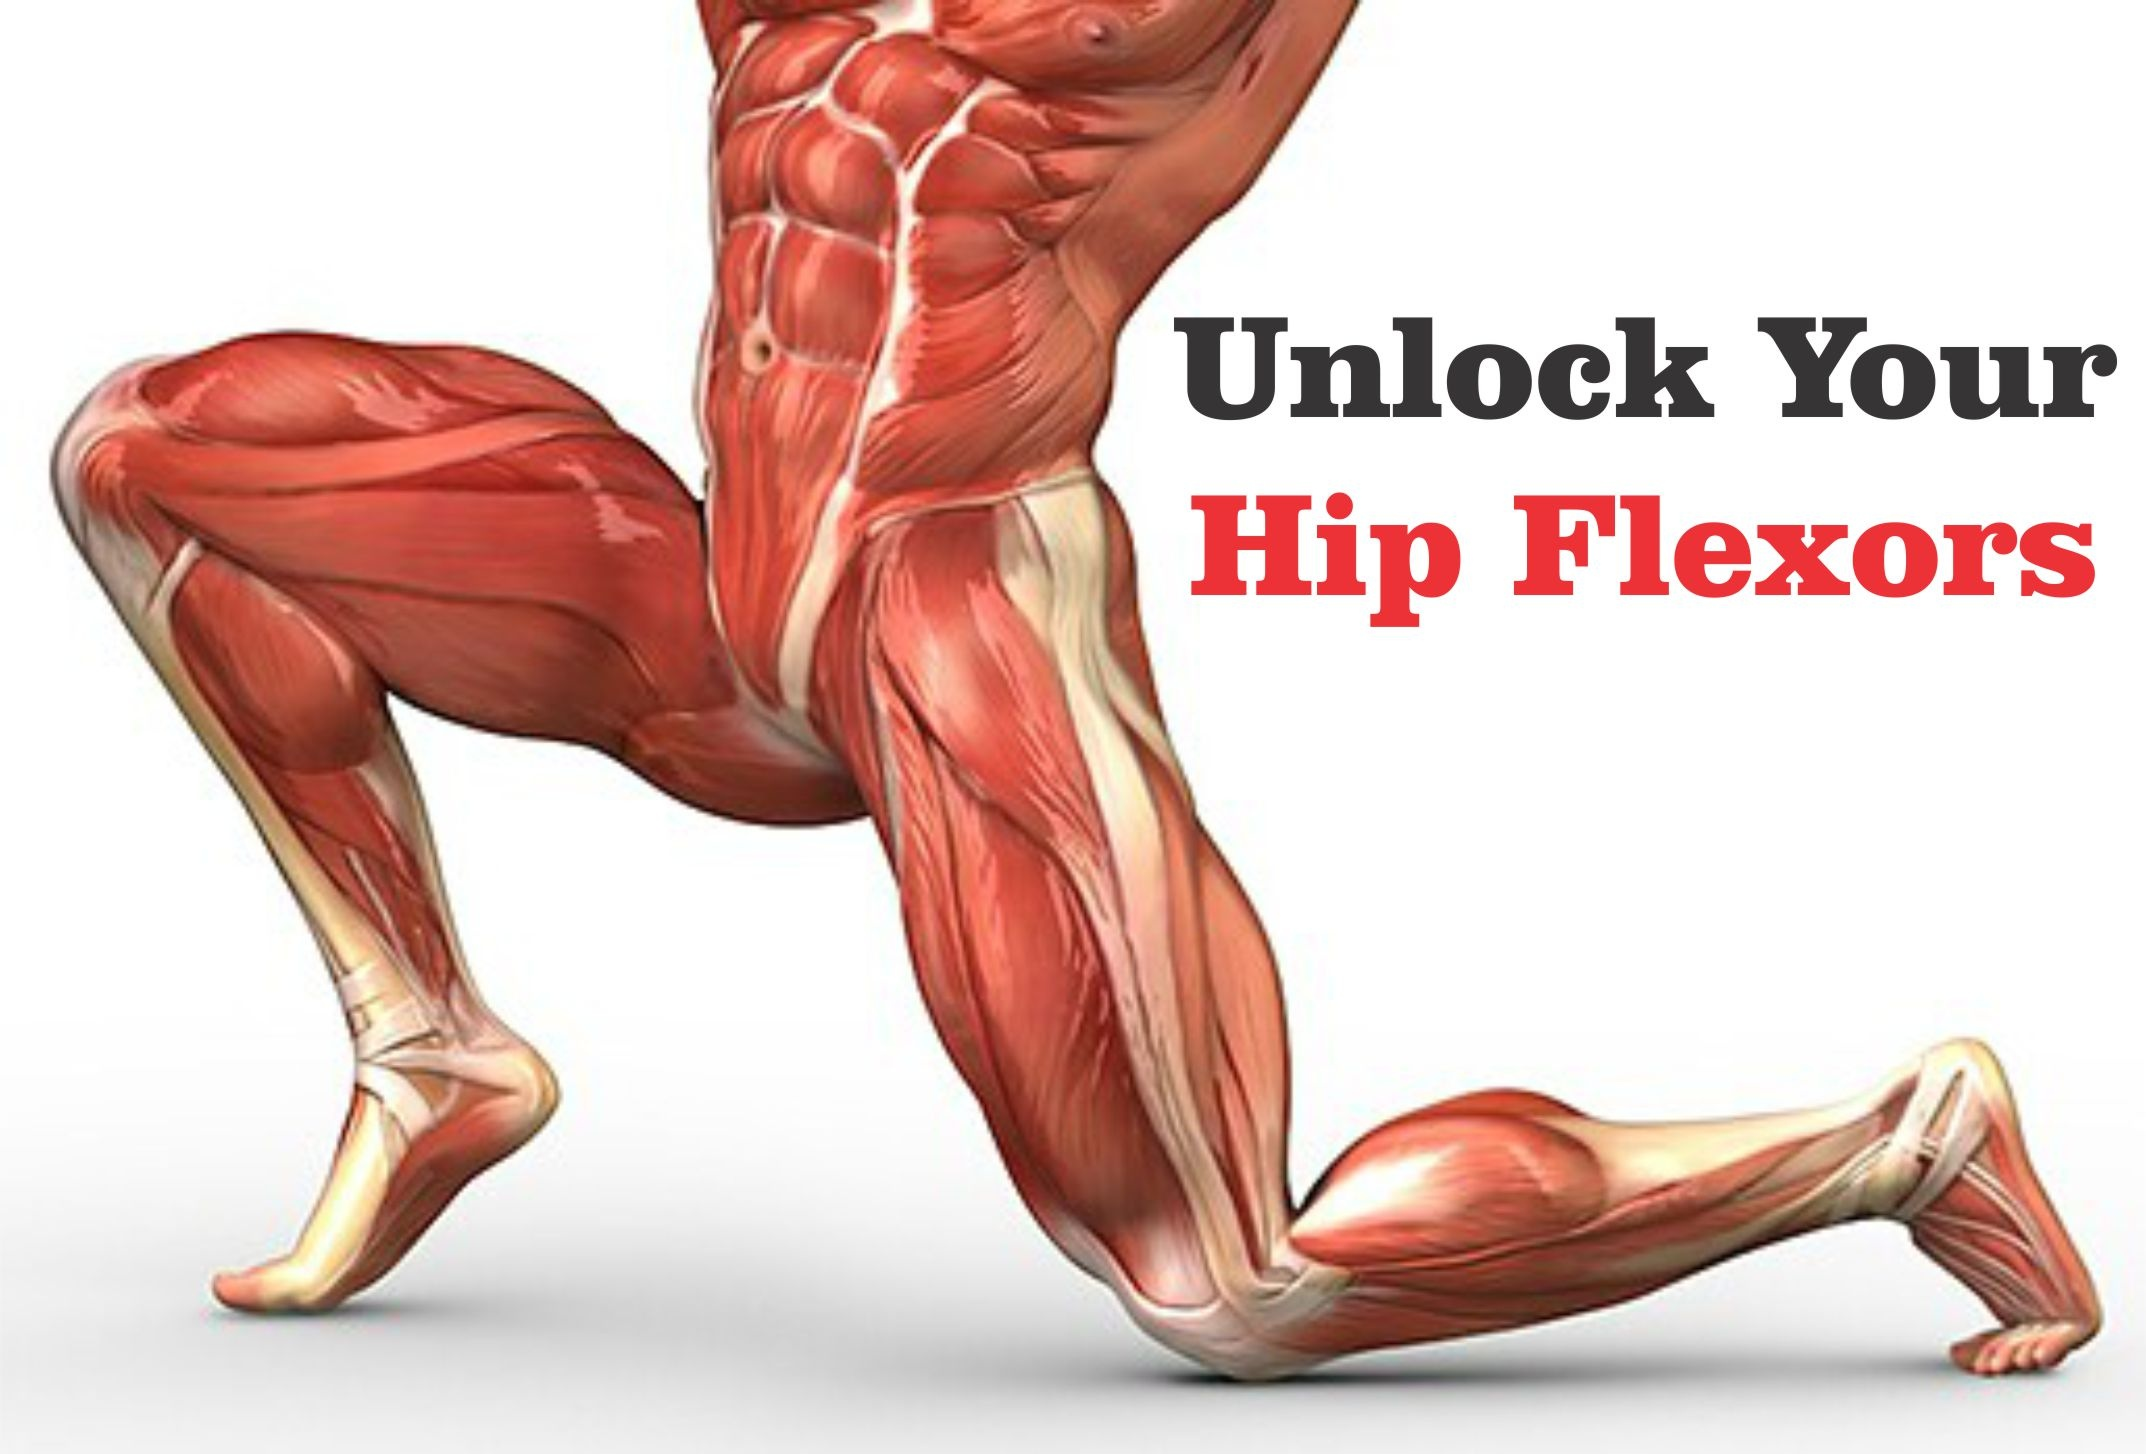 Yoga Tight Hip Flexors And Gait